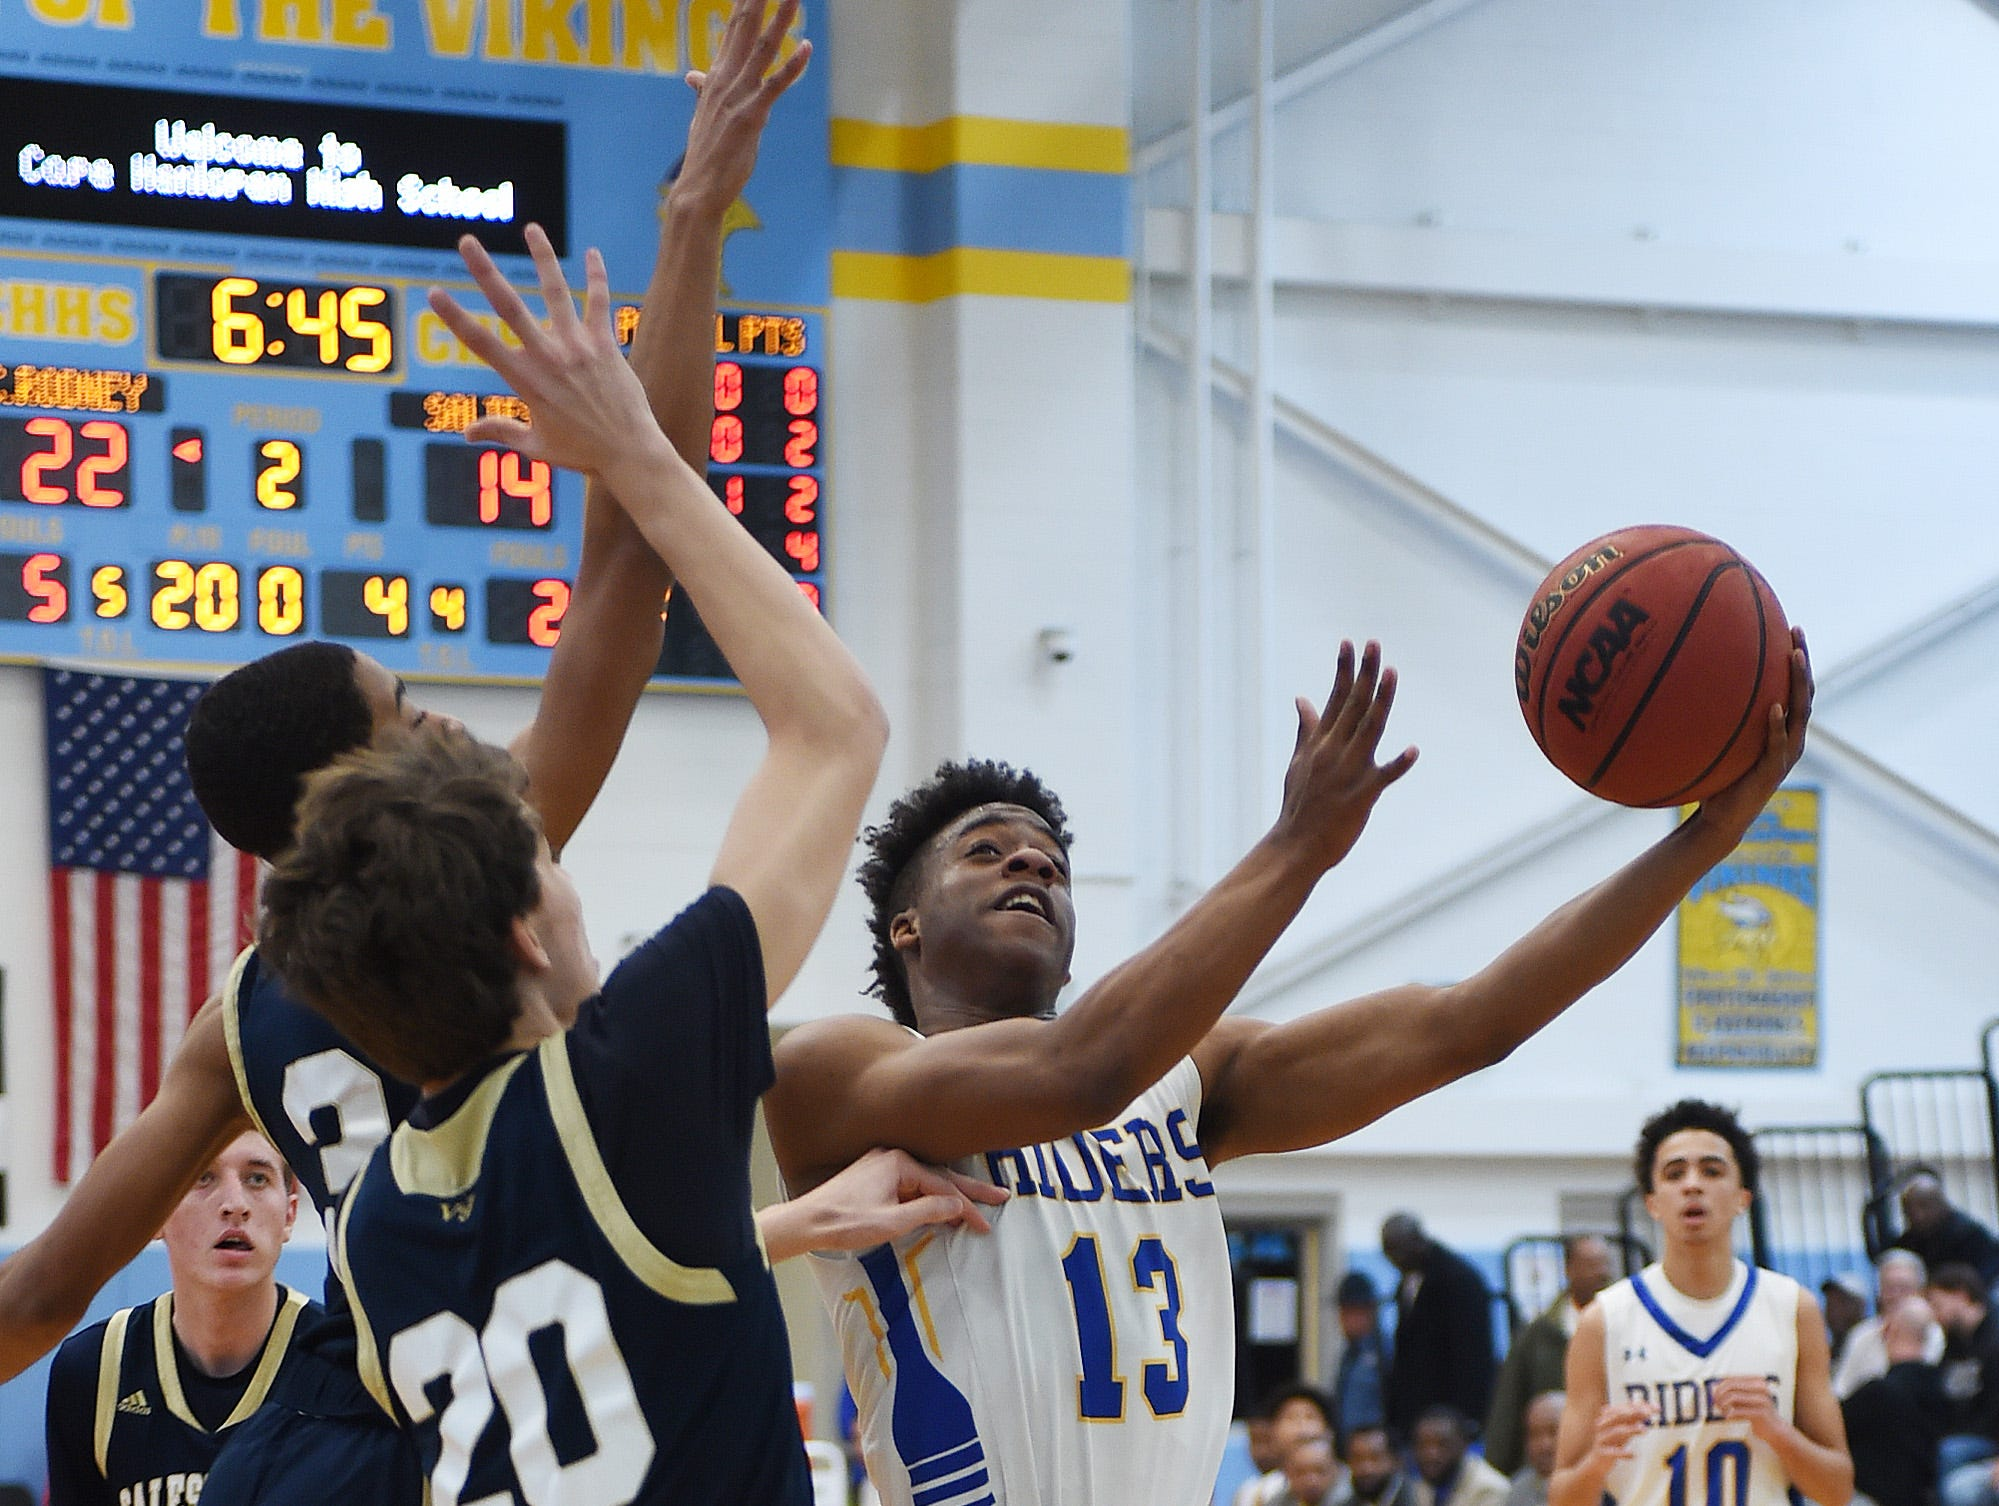 CR's #13 Zayquan Eaton goes for a basket as Slam Dunk to the Beach kicked off on Thursday December 27th with the opening game of Caesar Rodney playing Salesianum at the tournament held at Cape Henlopen High School.